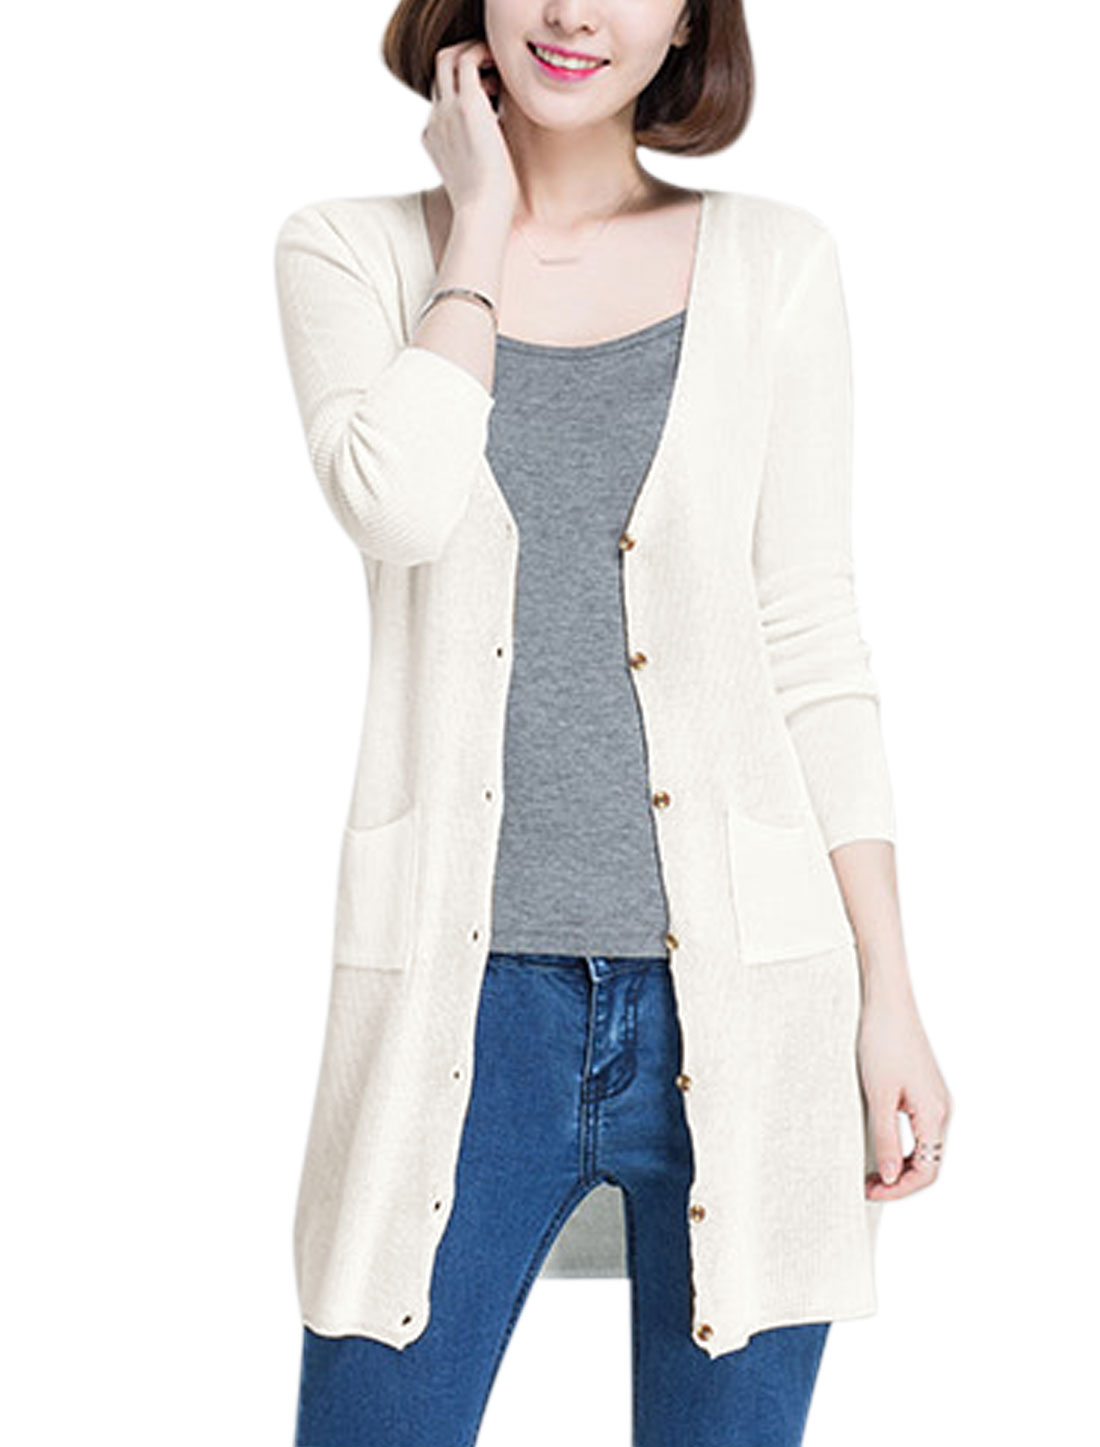 Woman Deep V Neck Single Breasted Two Pockets Knit Cardigan White M